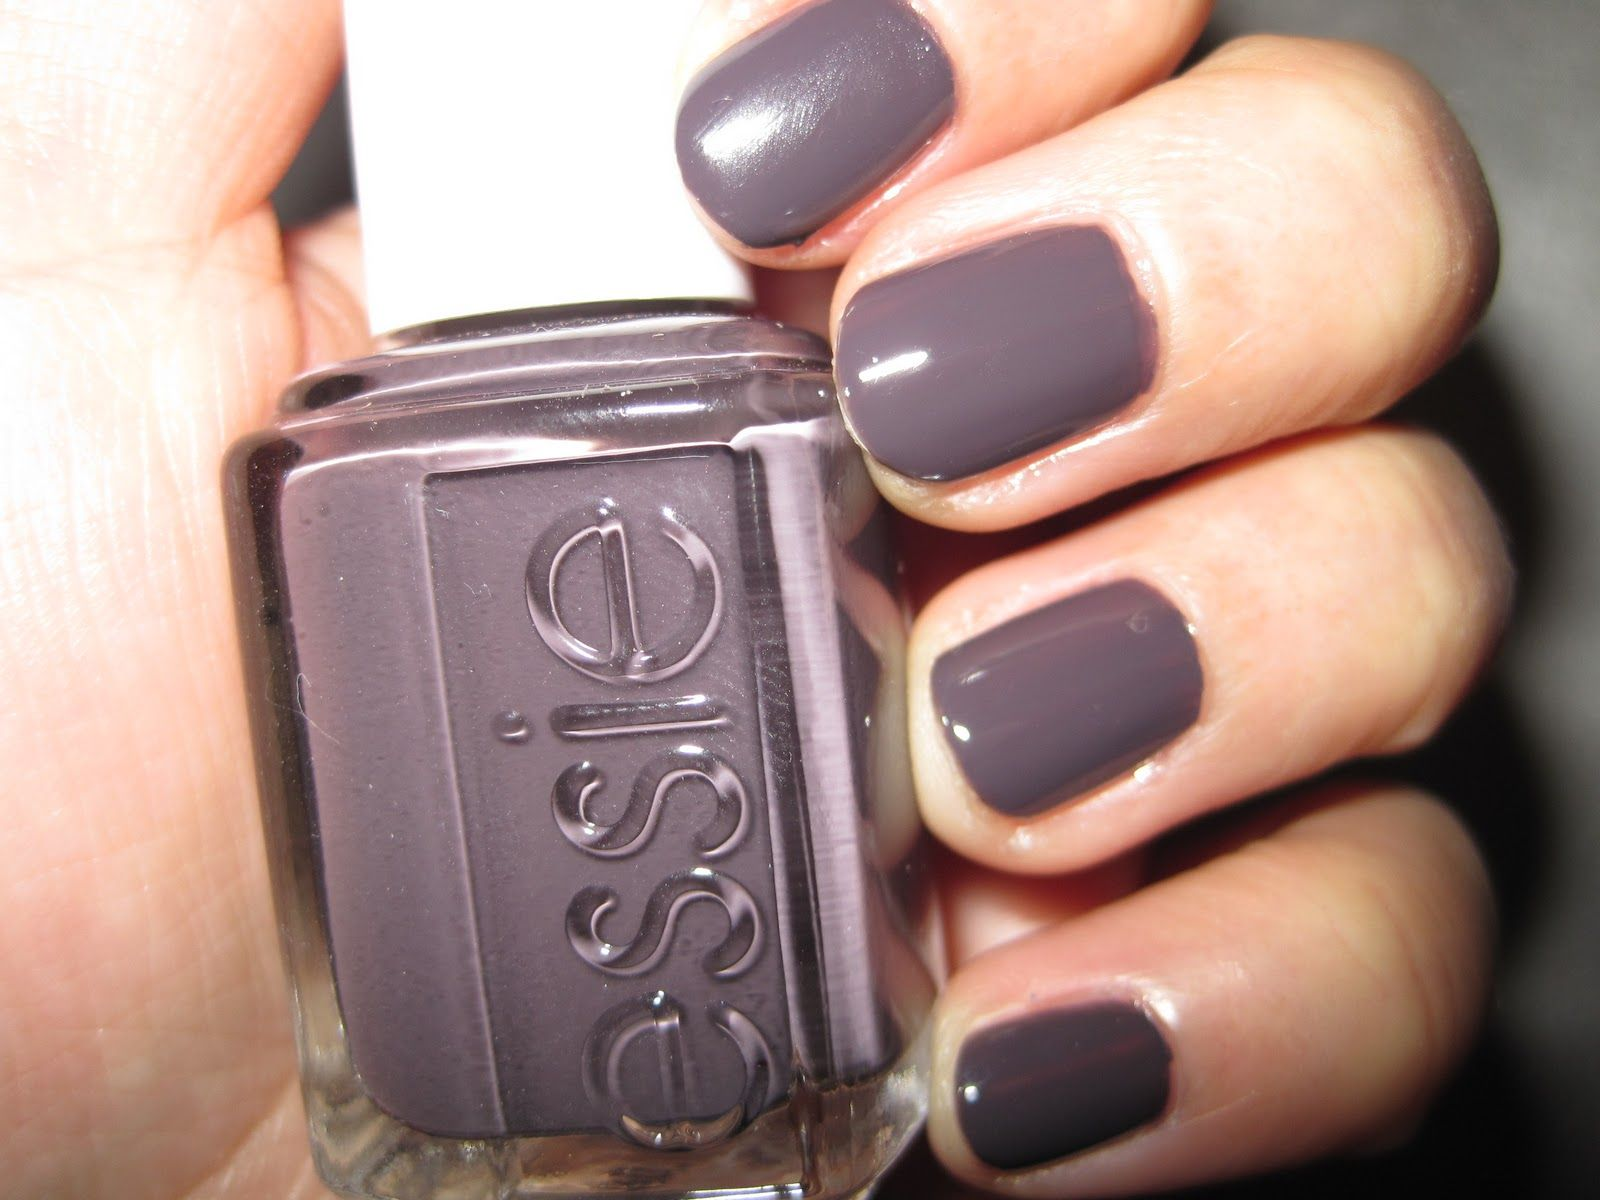 essie nail polish color smokin hot | Nails | Pinterest